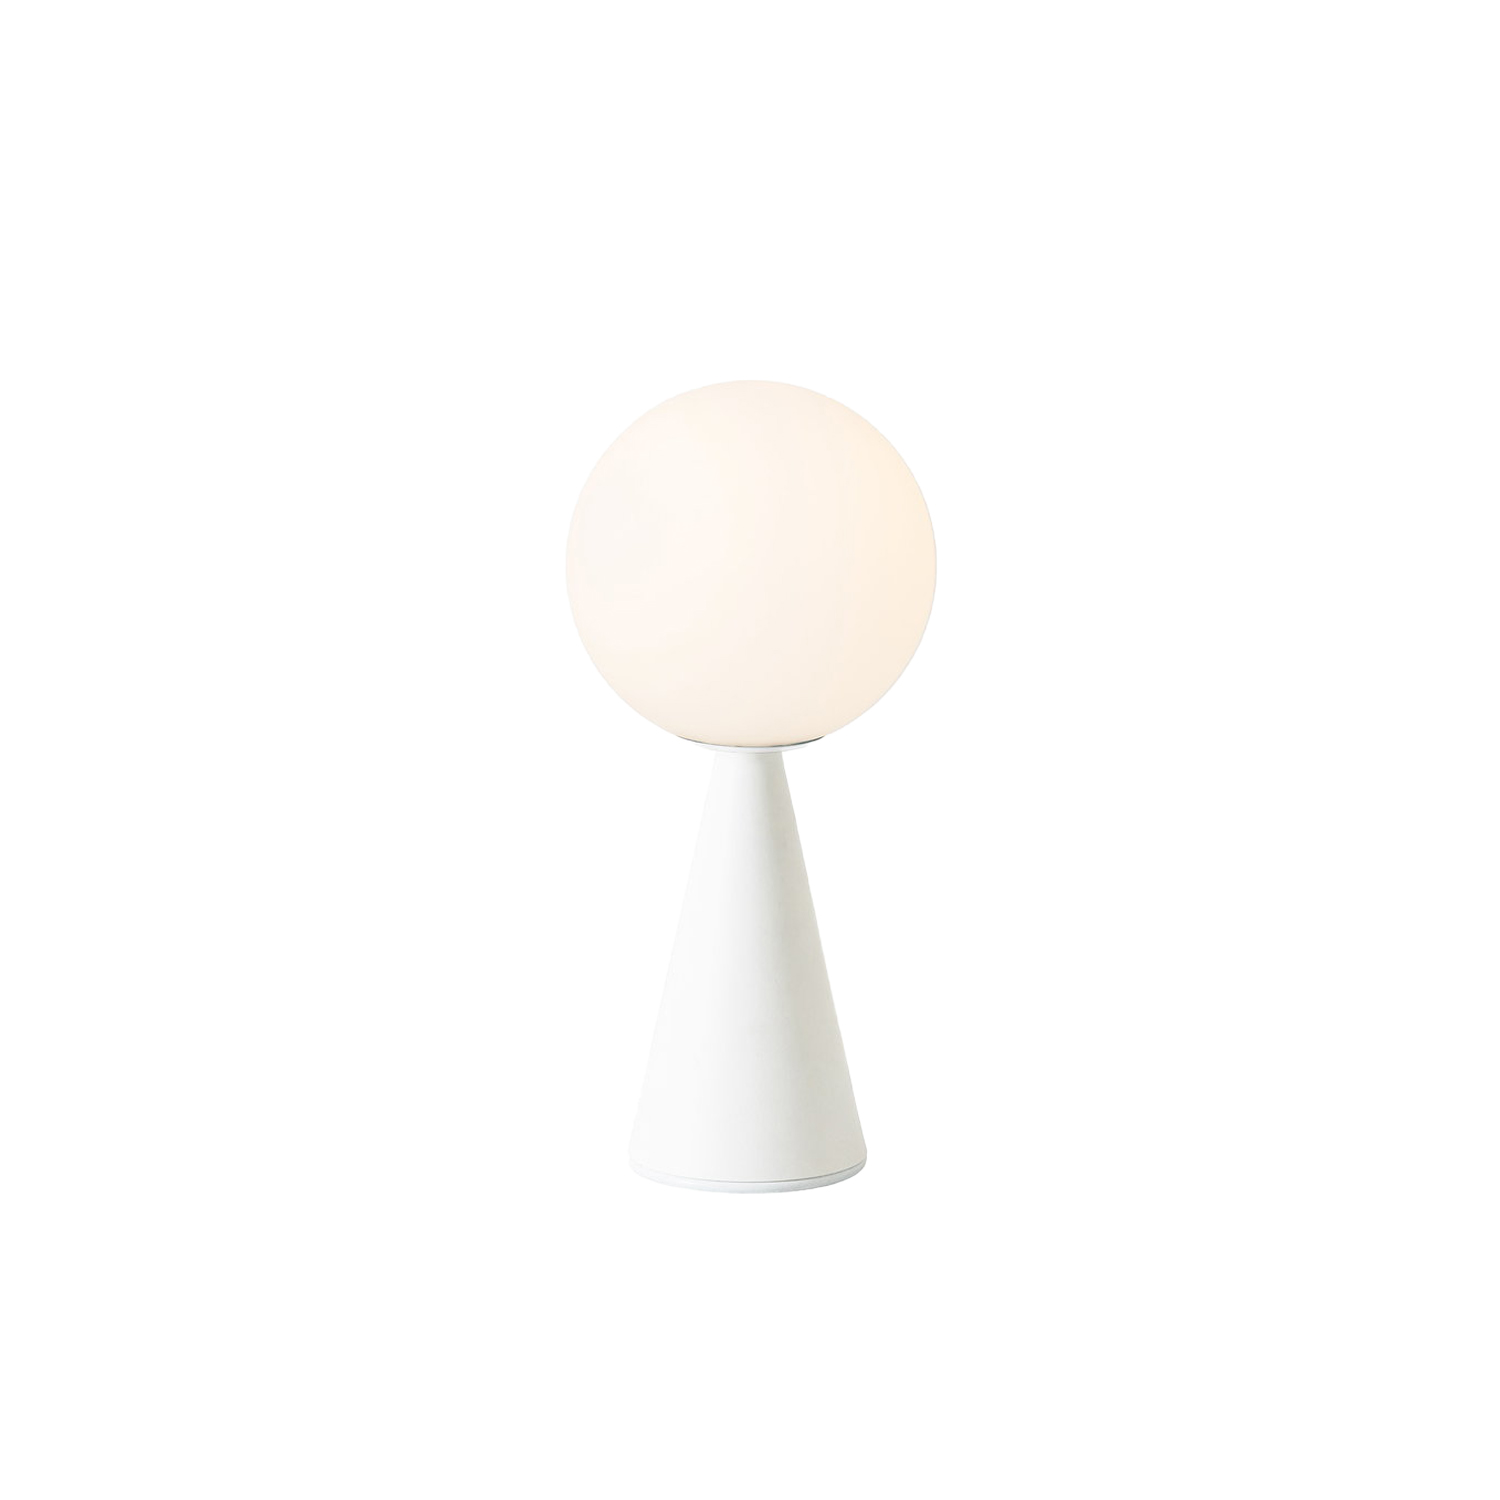 """Bilia Mini Table Lamp - Nothing more than a sphere, set in an apparently impossible feat of balance, upon a cone that serves as the base. One of Gio Ponti's many compositional magic tricks, designed in 1932. The counterbalancing of two elementary geometric forms results in an original, perfectly proportioned object. An unpretentious composition, enriched by the extraordinary balance of its proportions and the stylish discretion of non-reflective materials.The light is diffused and valorized by the geometrical simplicity of the design. In designing Bilia, Gio Ponti imagined a smaller version in a range of """"spray colours"""". From those handwritten notes of the original project, FontanaArte presents Bilia Mini in new breathtaking chromatic variations. 